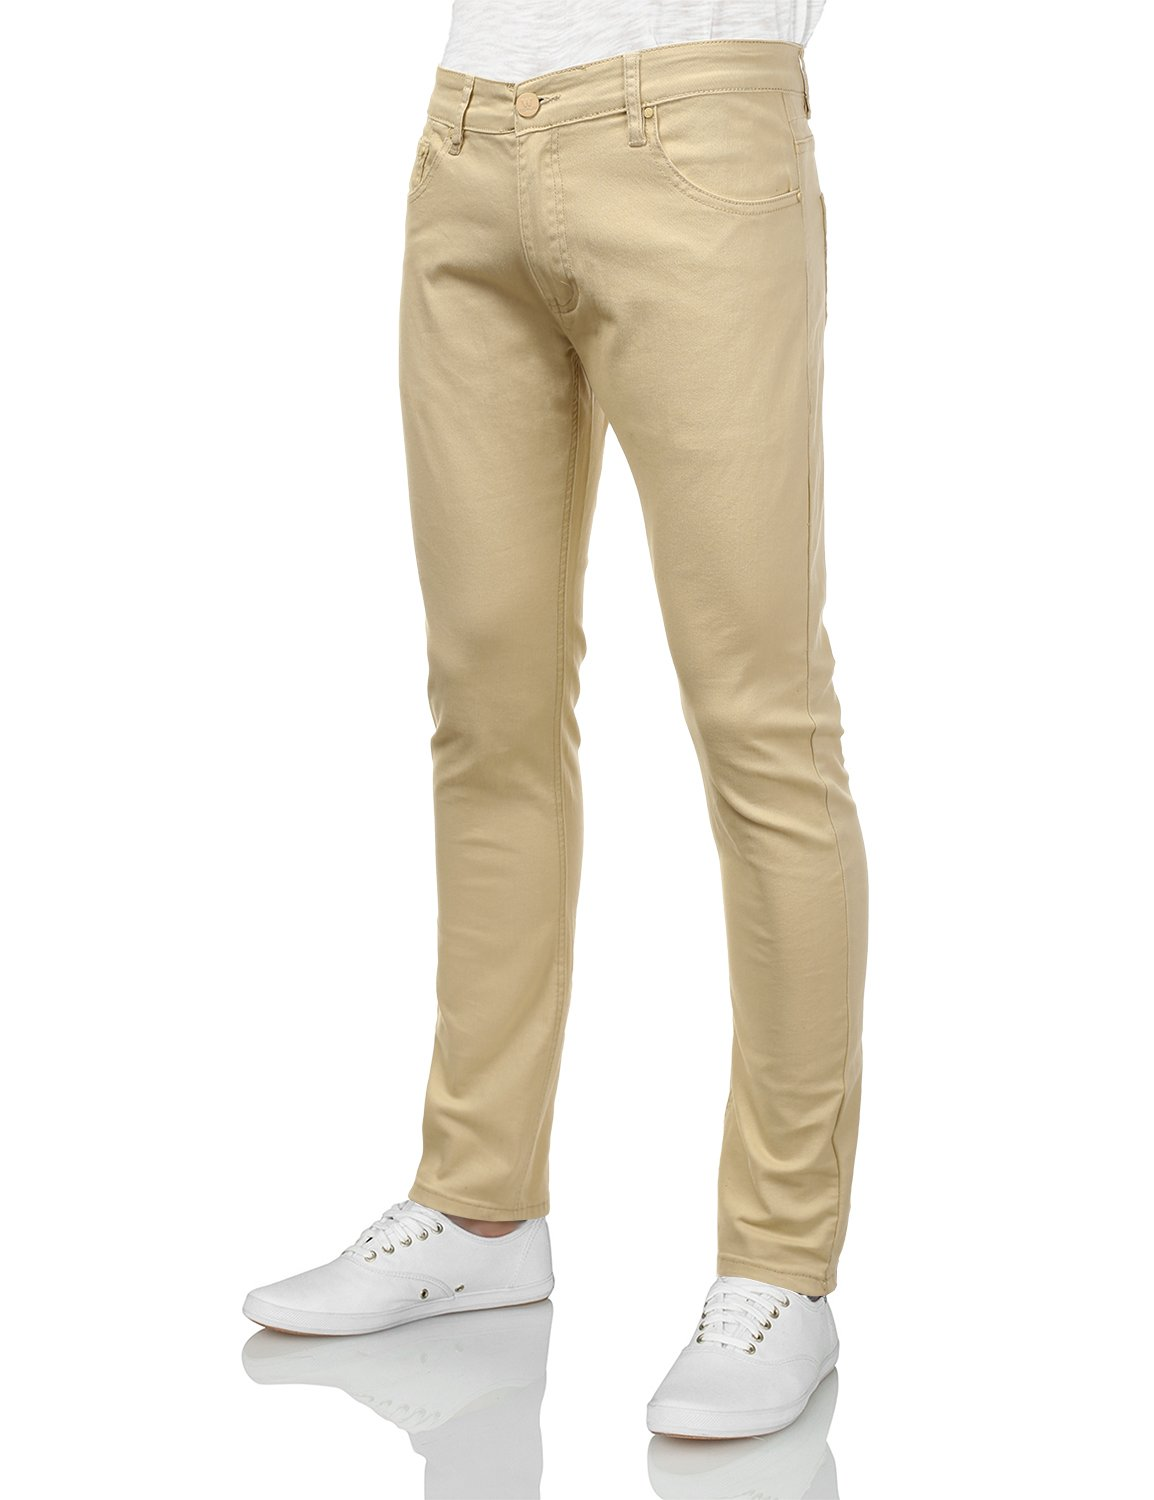 IDARBI Mens Basic Casual Cotton Skinny-Fit Jeans Beige 36/32